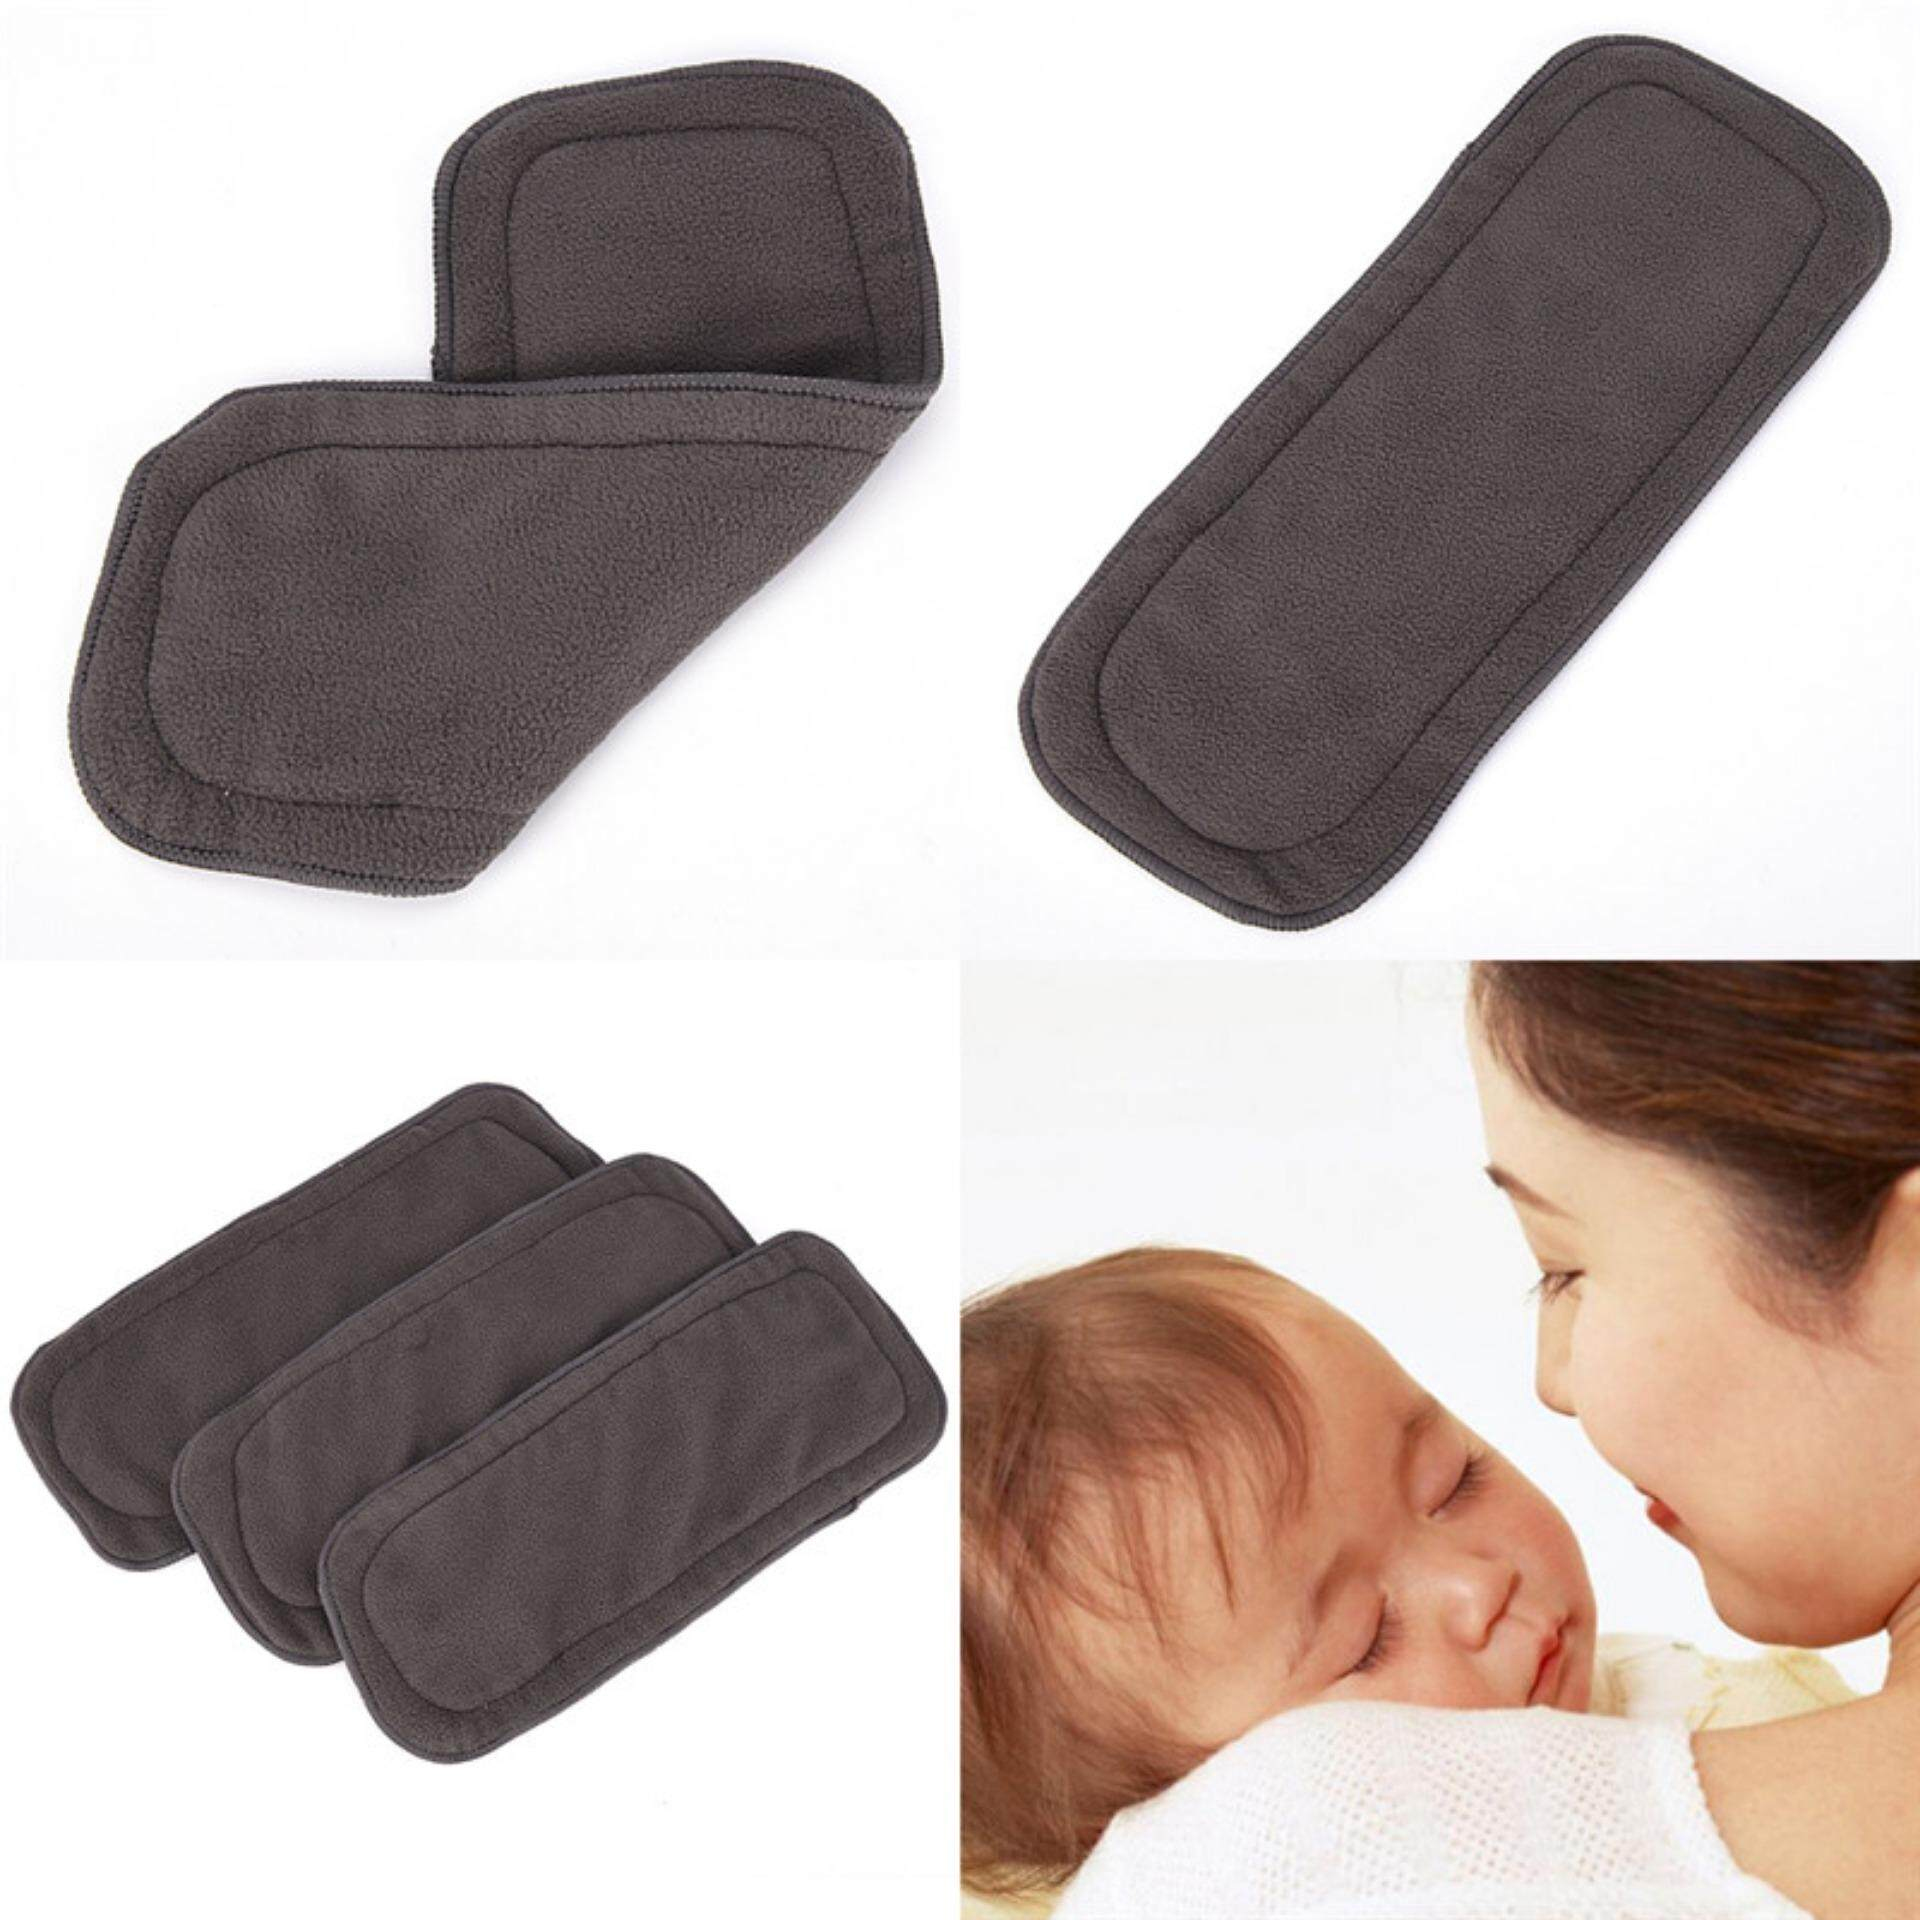 4 Layers Soft Reusable Born Baby Bamboo Charcoal Cotton Liners Cloth Diapers Black - Intl By Civilian Princess.